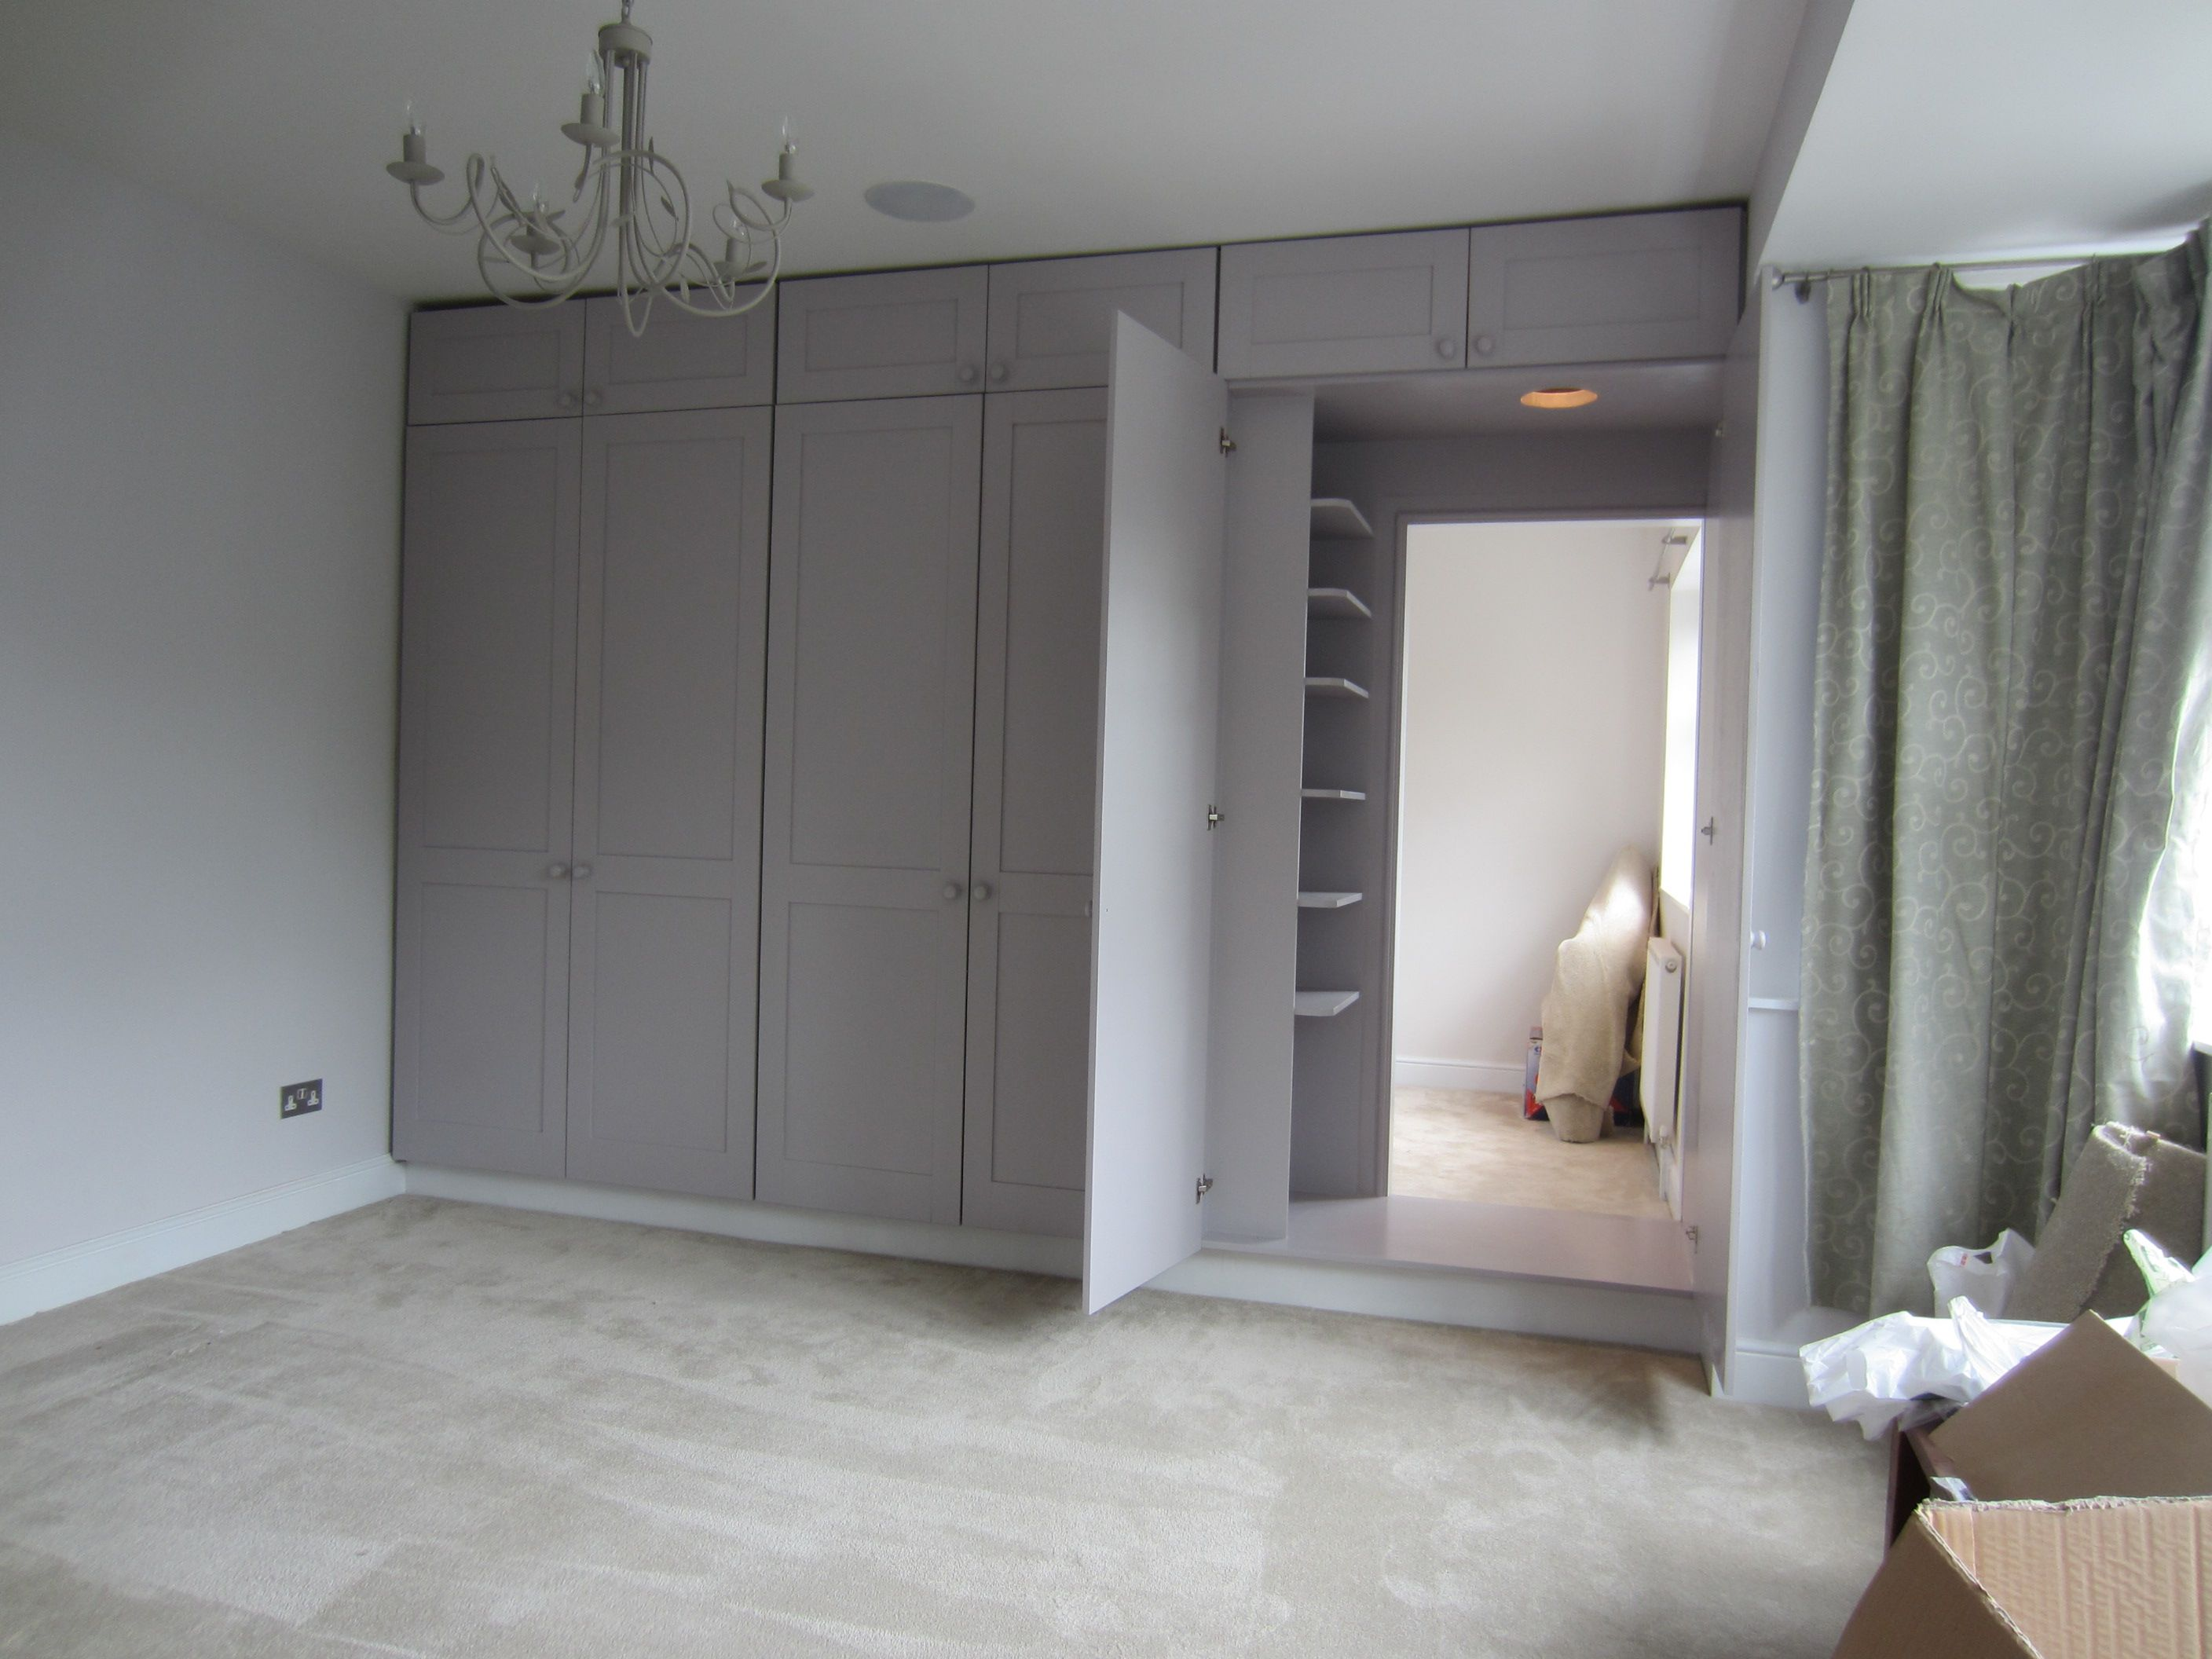 Wardrobe Doors Reveal Hidden Dressing Room Containing